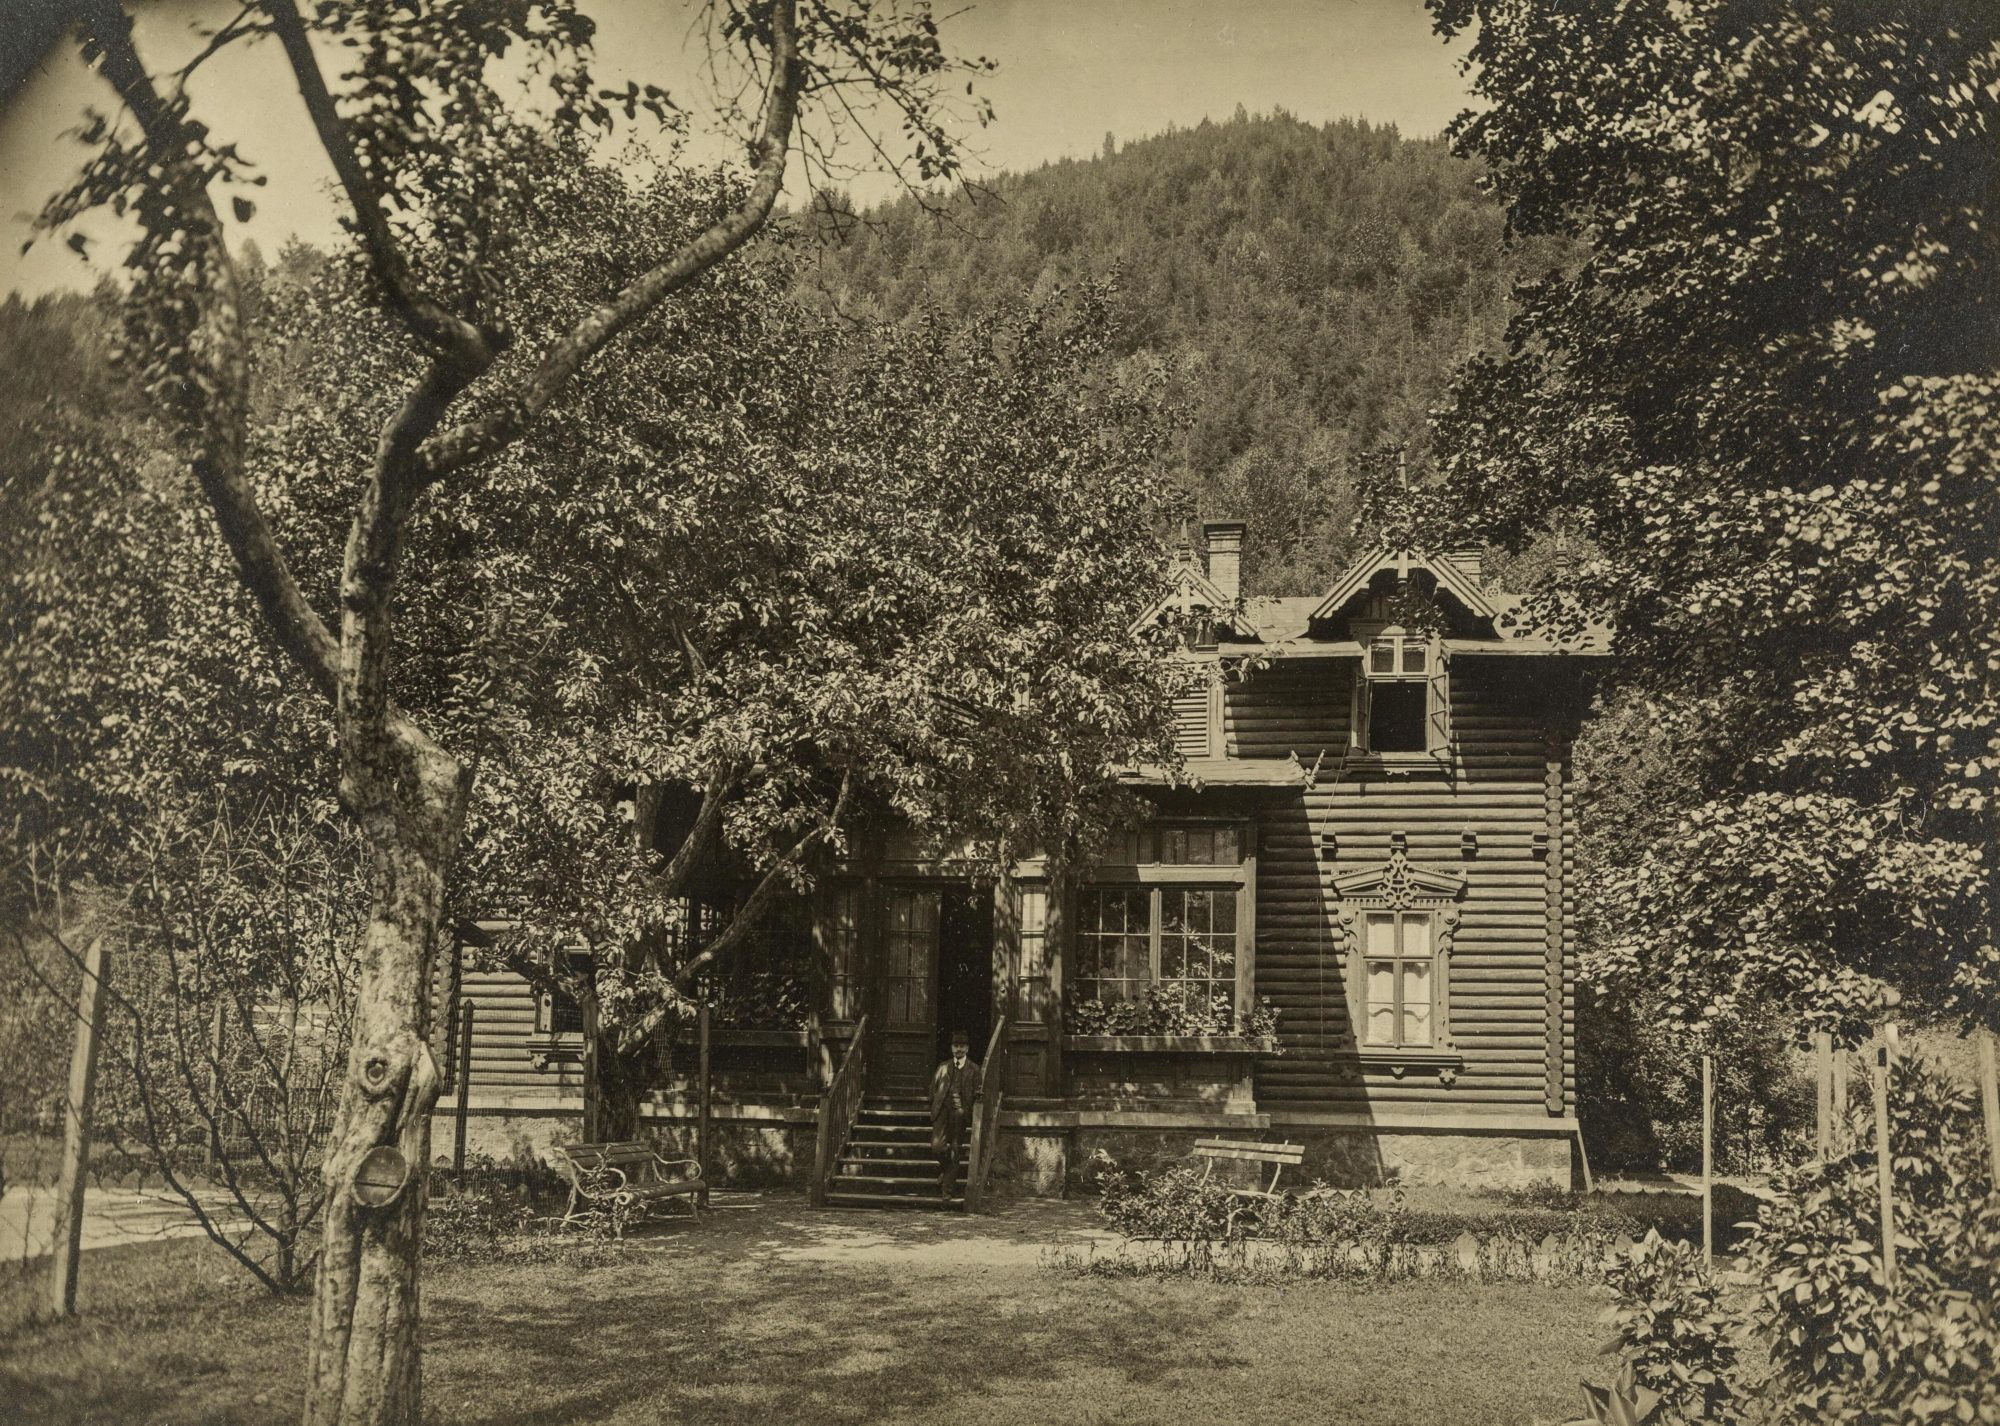 Photograph of Melanie Klein's home in Krappitz, around 1907